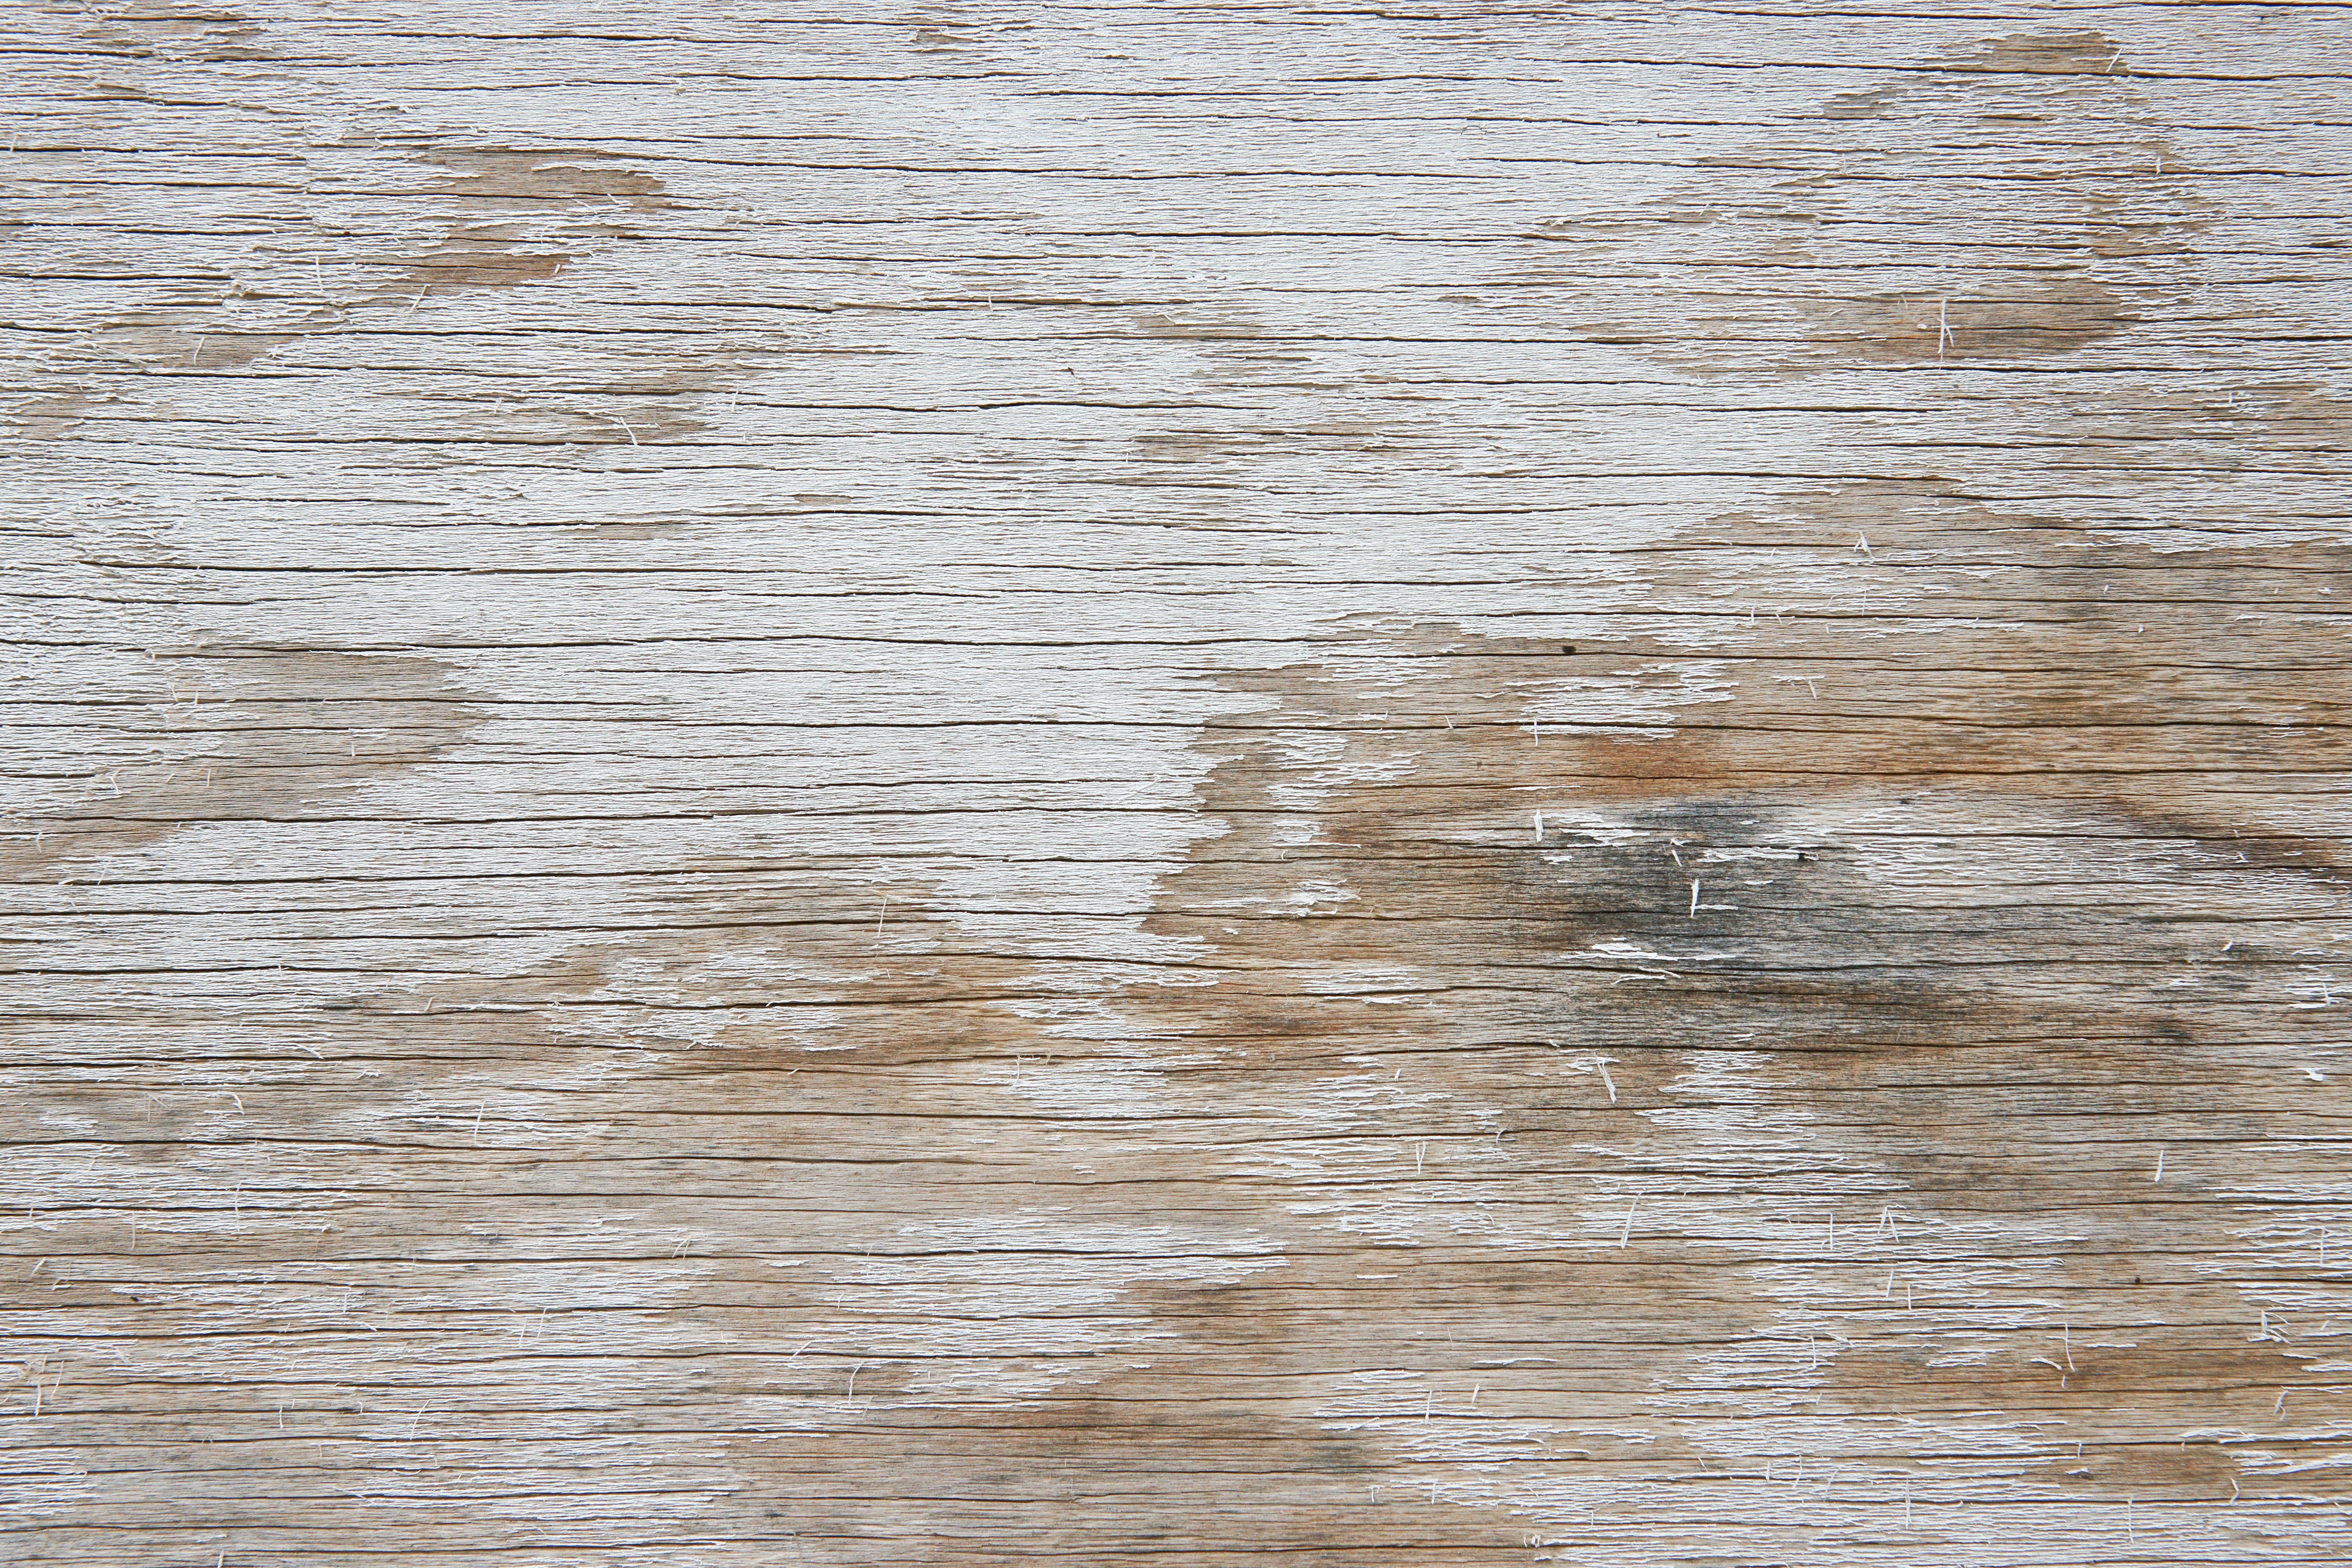 old painted wood high resolution background texture 5719x3813